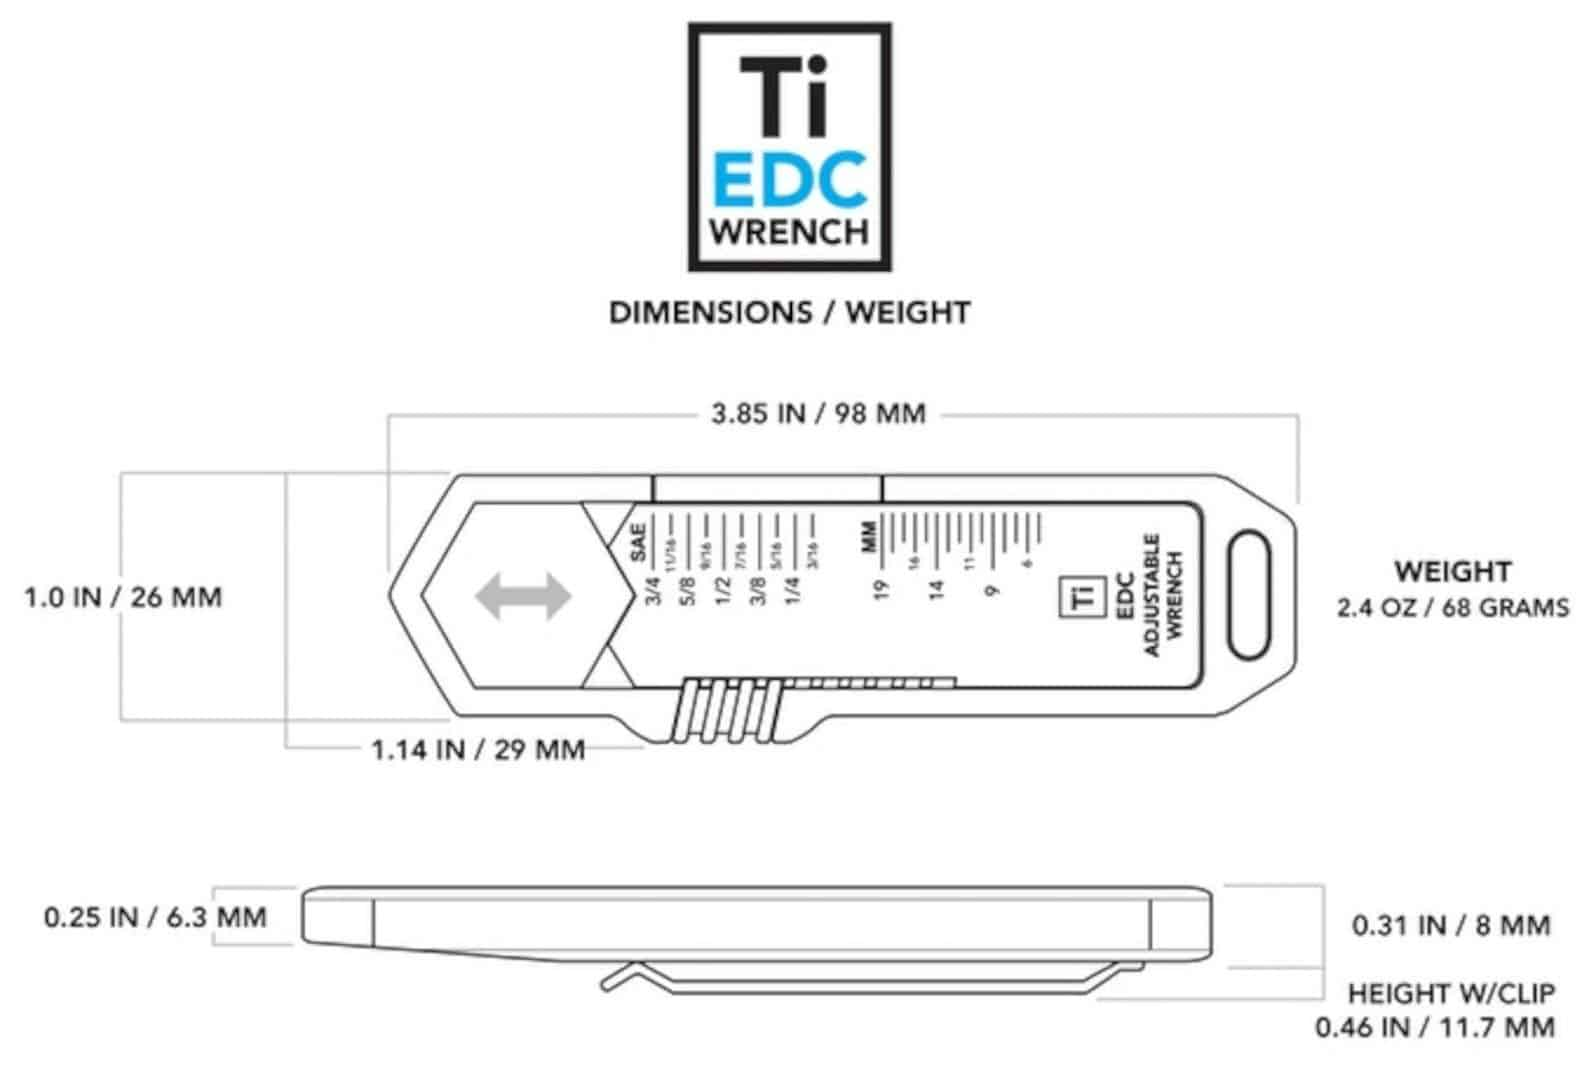 Ti Edc Wrench 1